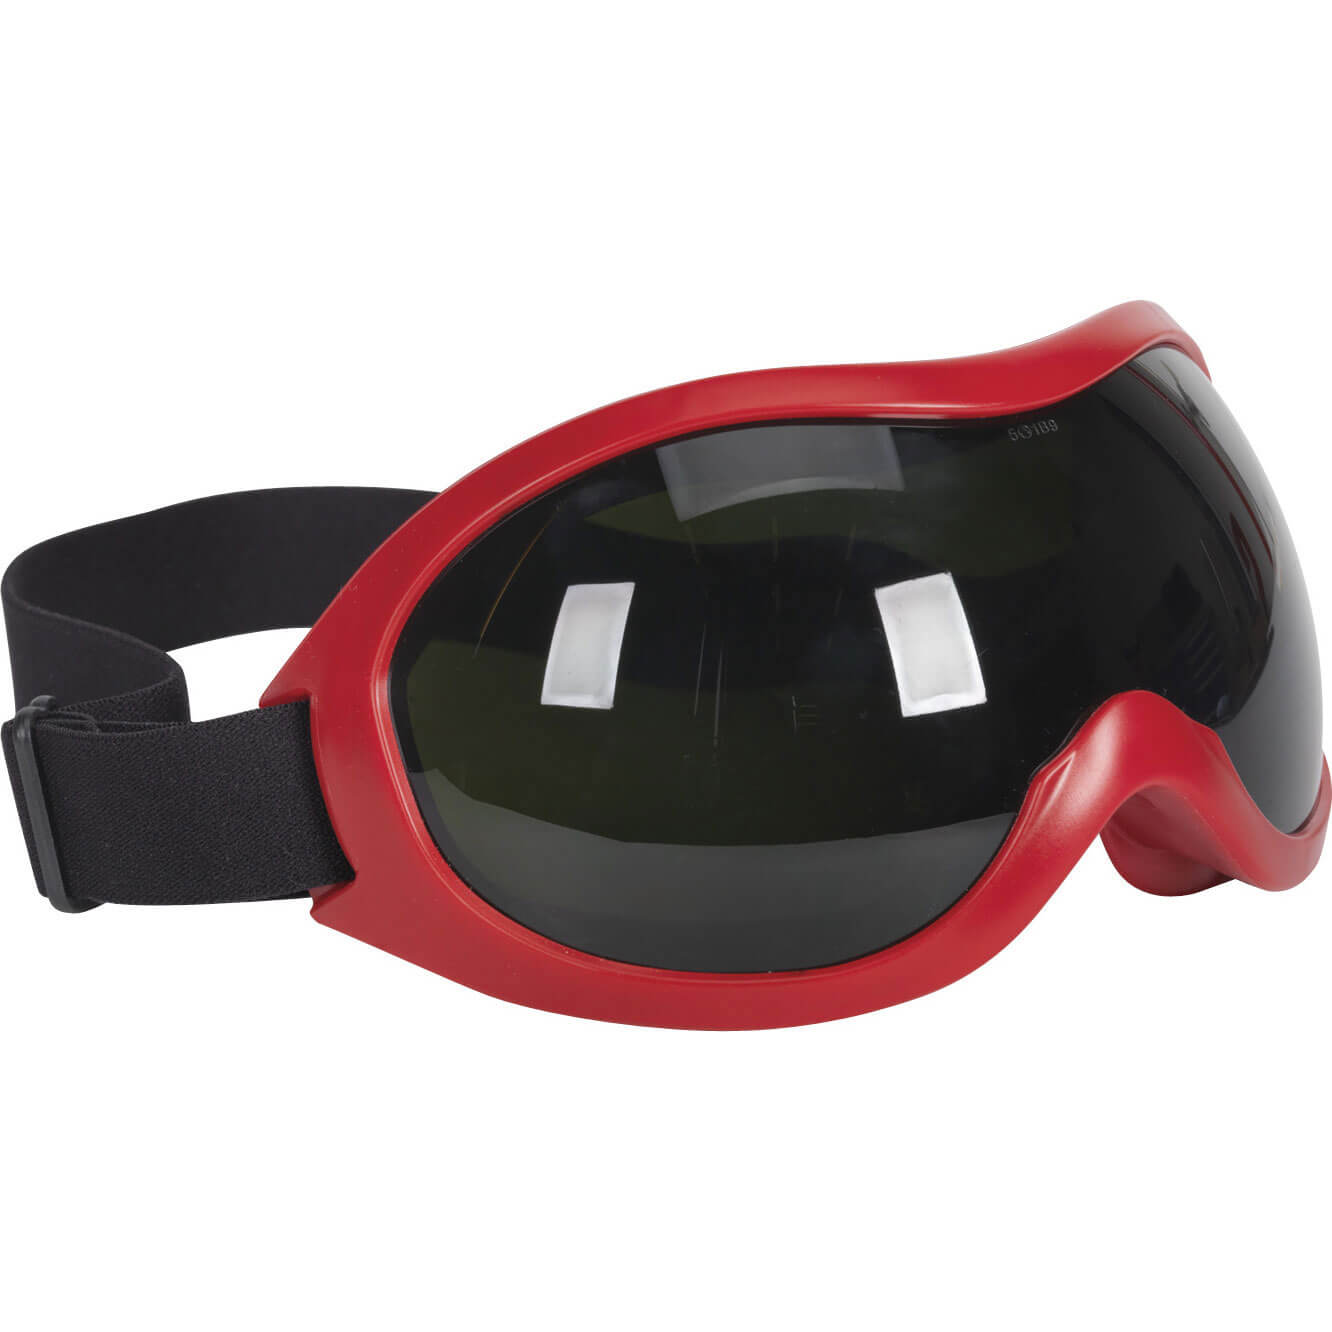 Image of Sealey Deluxe Ventilated Gas Welding Goggles